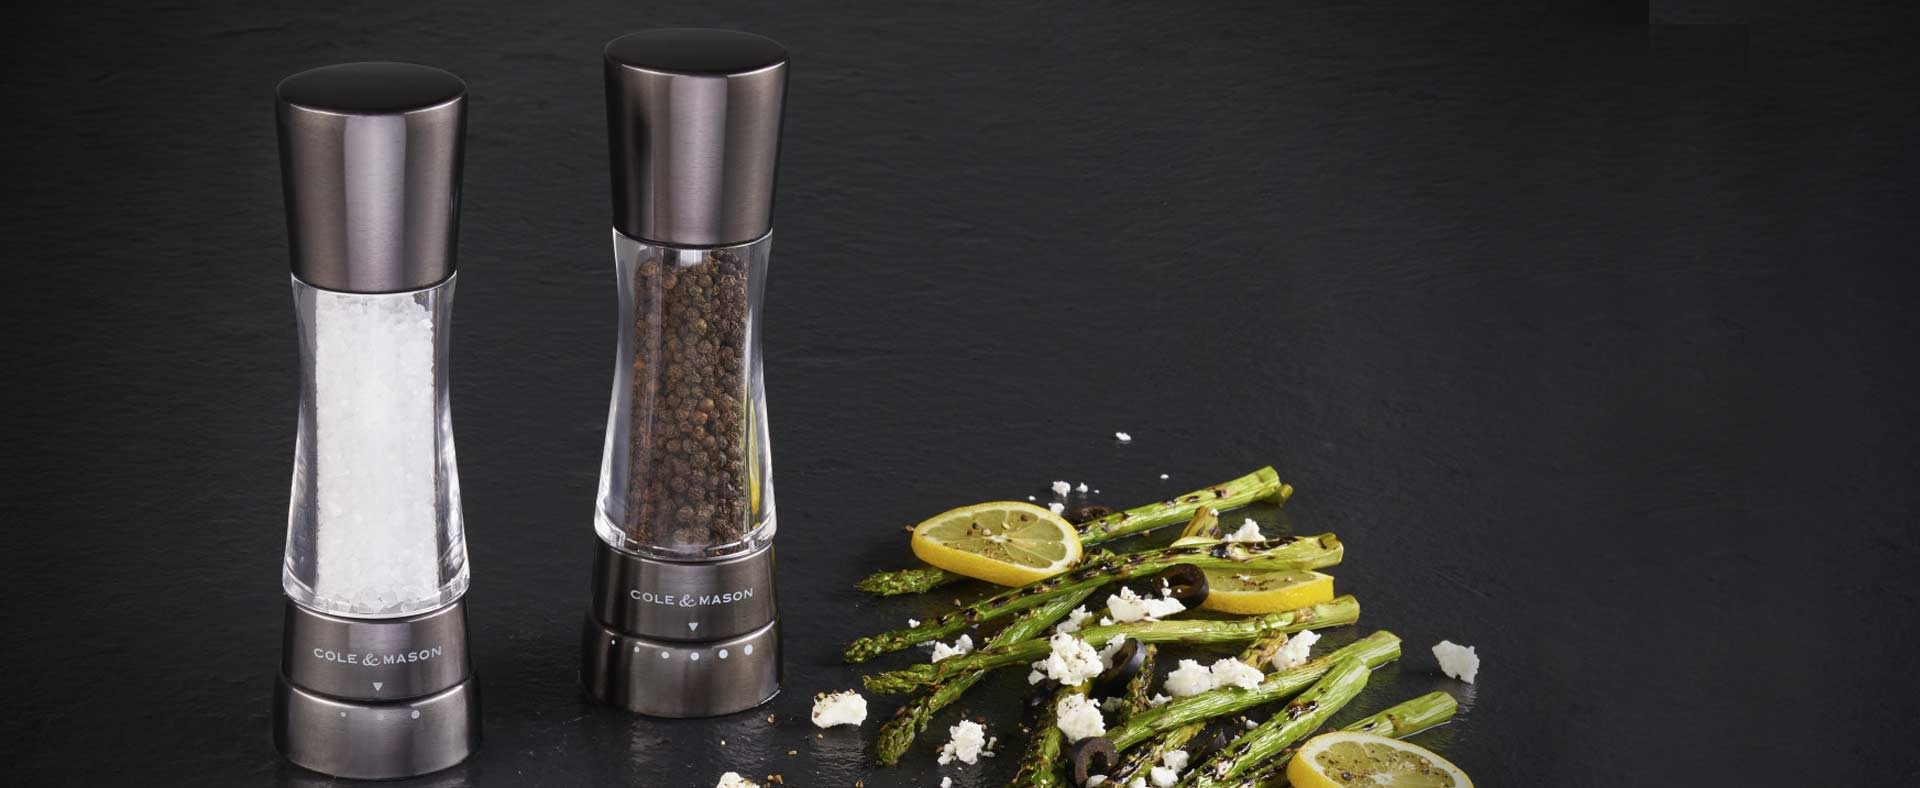 Cole & Mason salt mill and pepper mill in gun metal